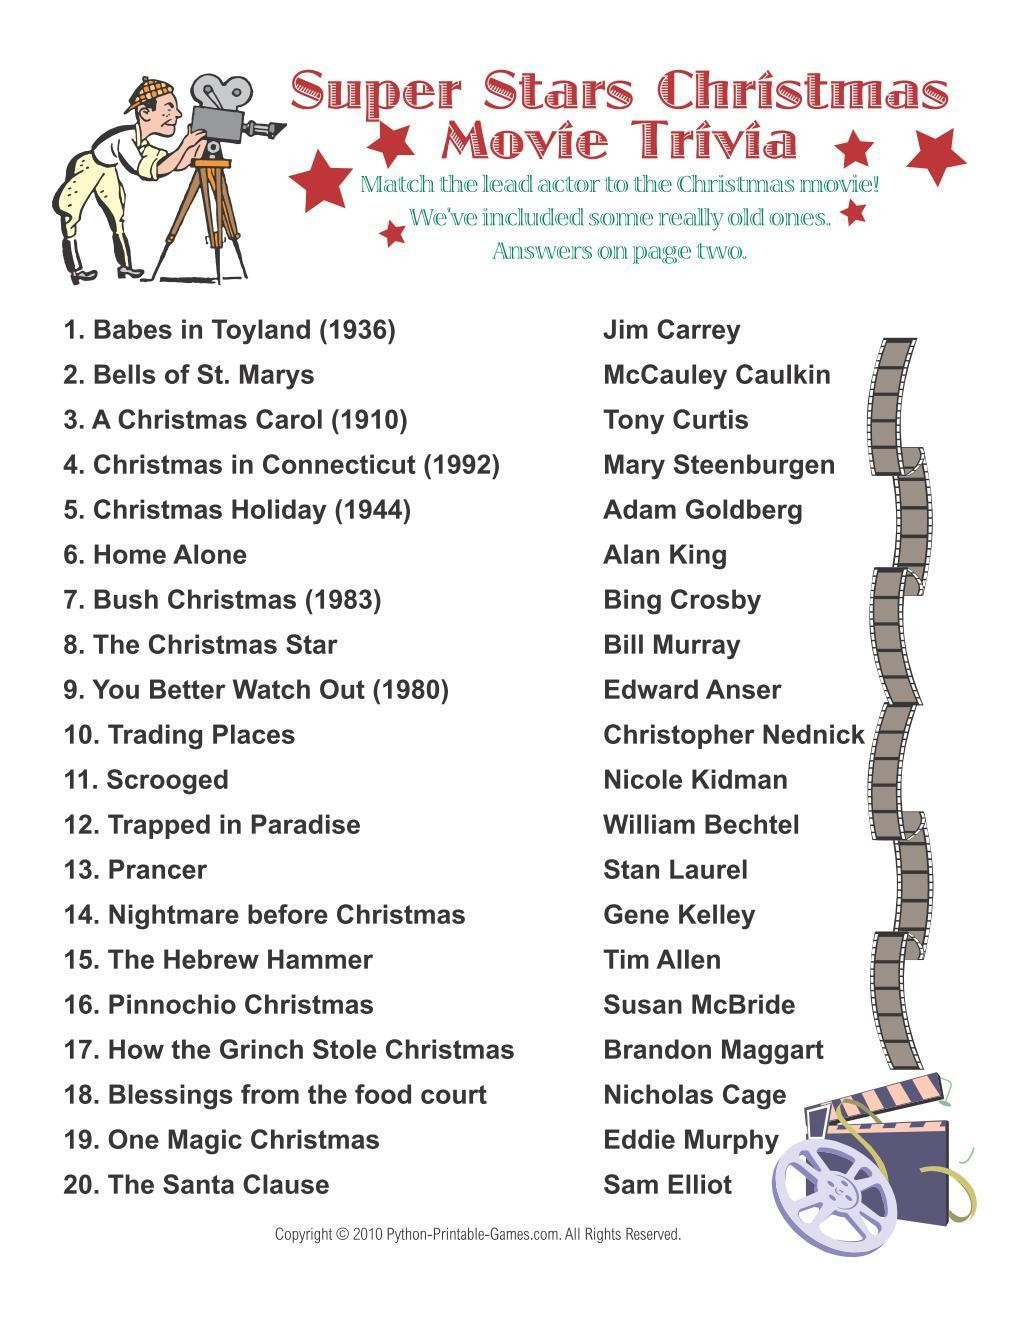 photo relating to Christmas Movie Trivia Printable known as Xmas: Tremendous Celebs Flicks Trivia